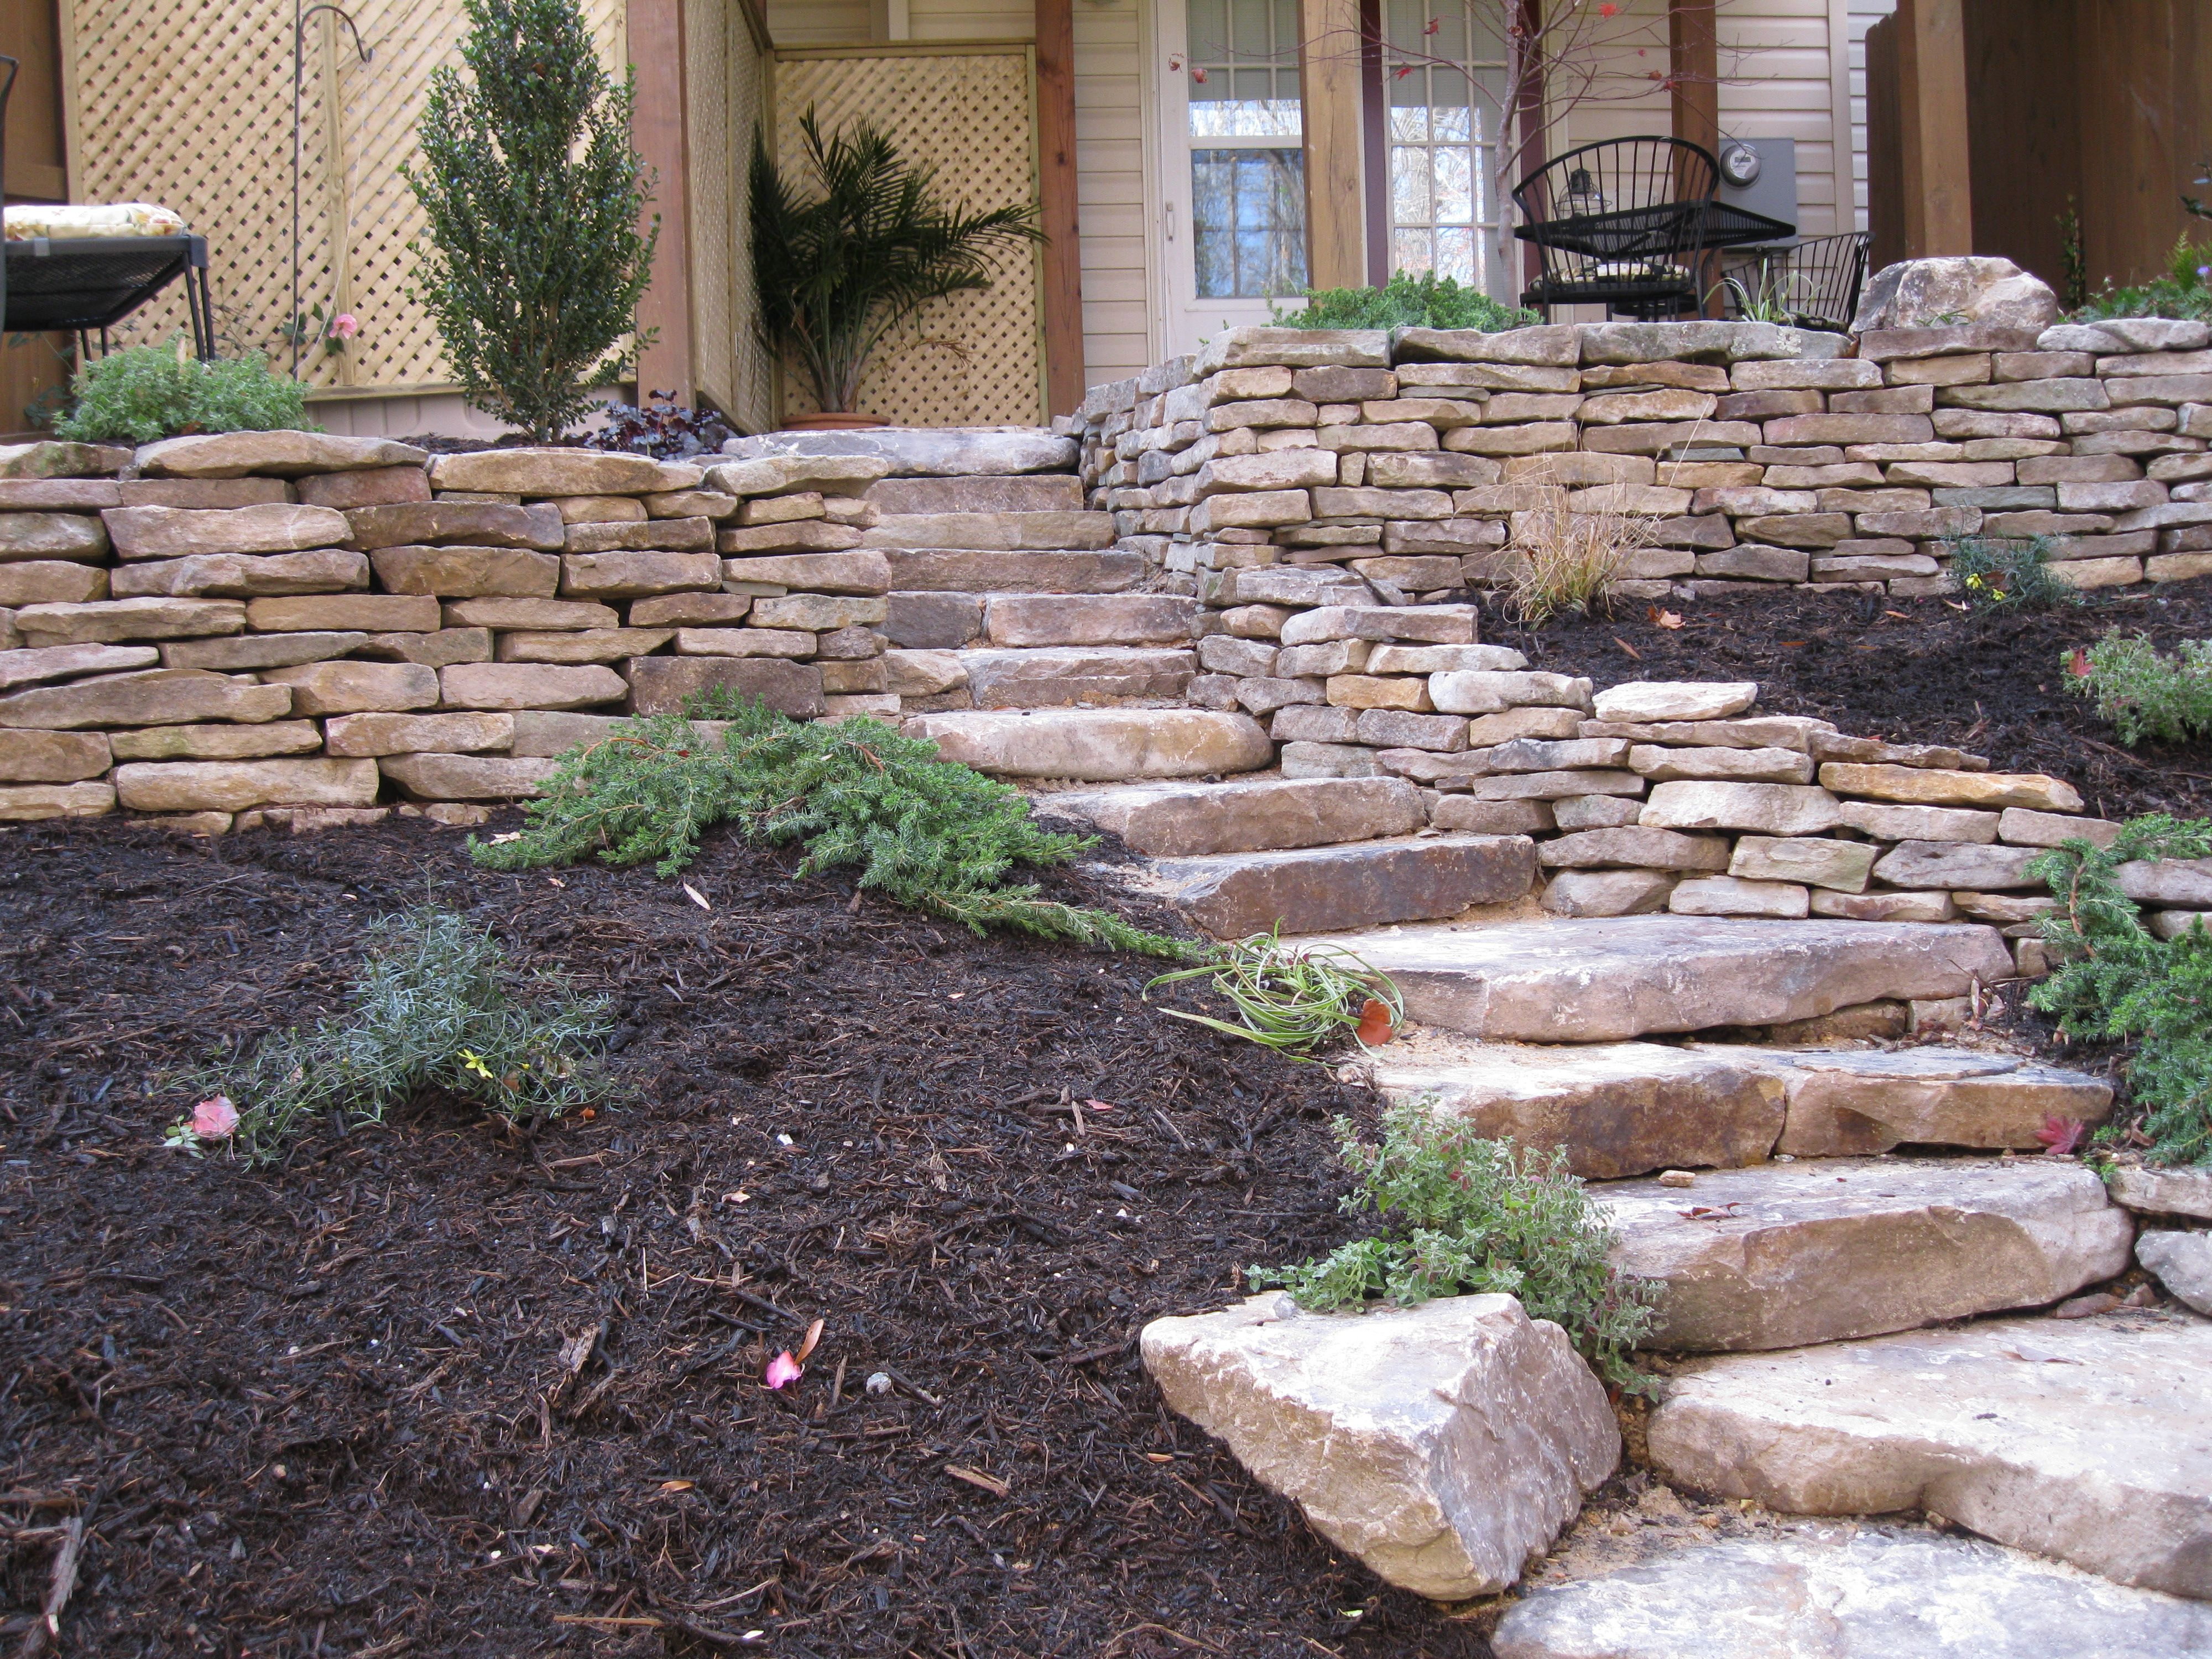 these stacked stone walls were built to level a sloped backyard